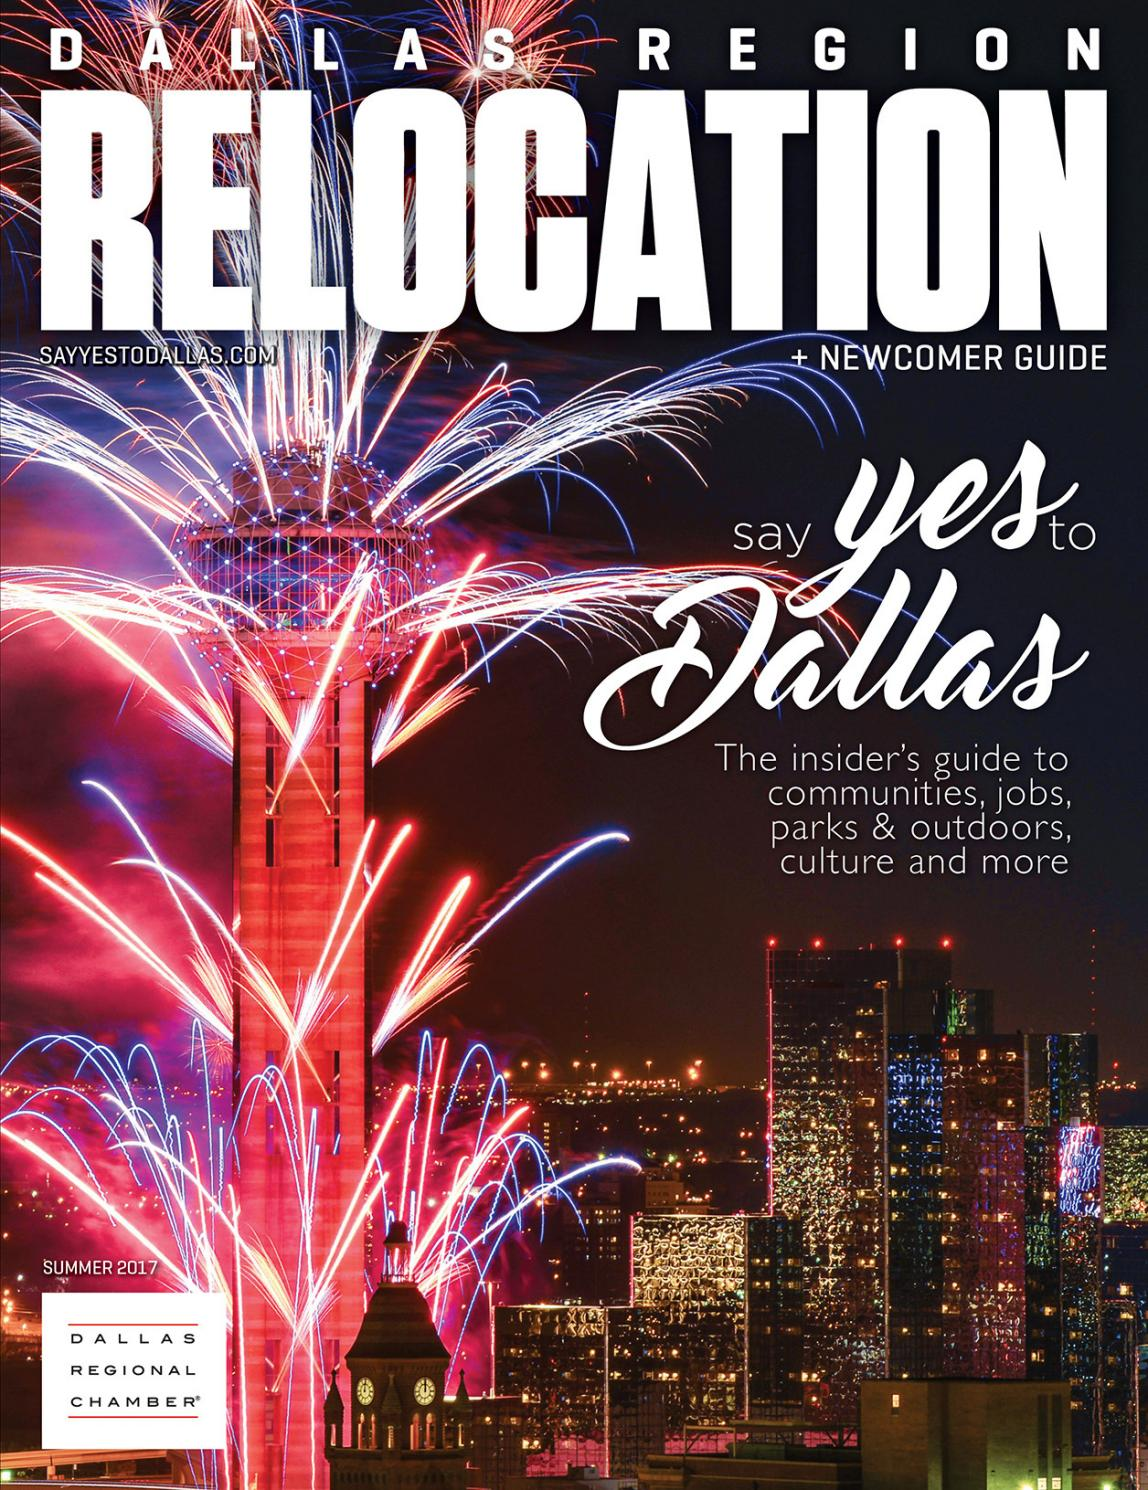 chamber of commerce relocation guide